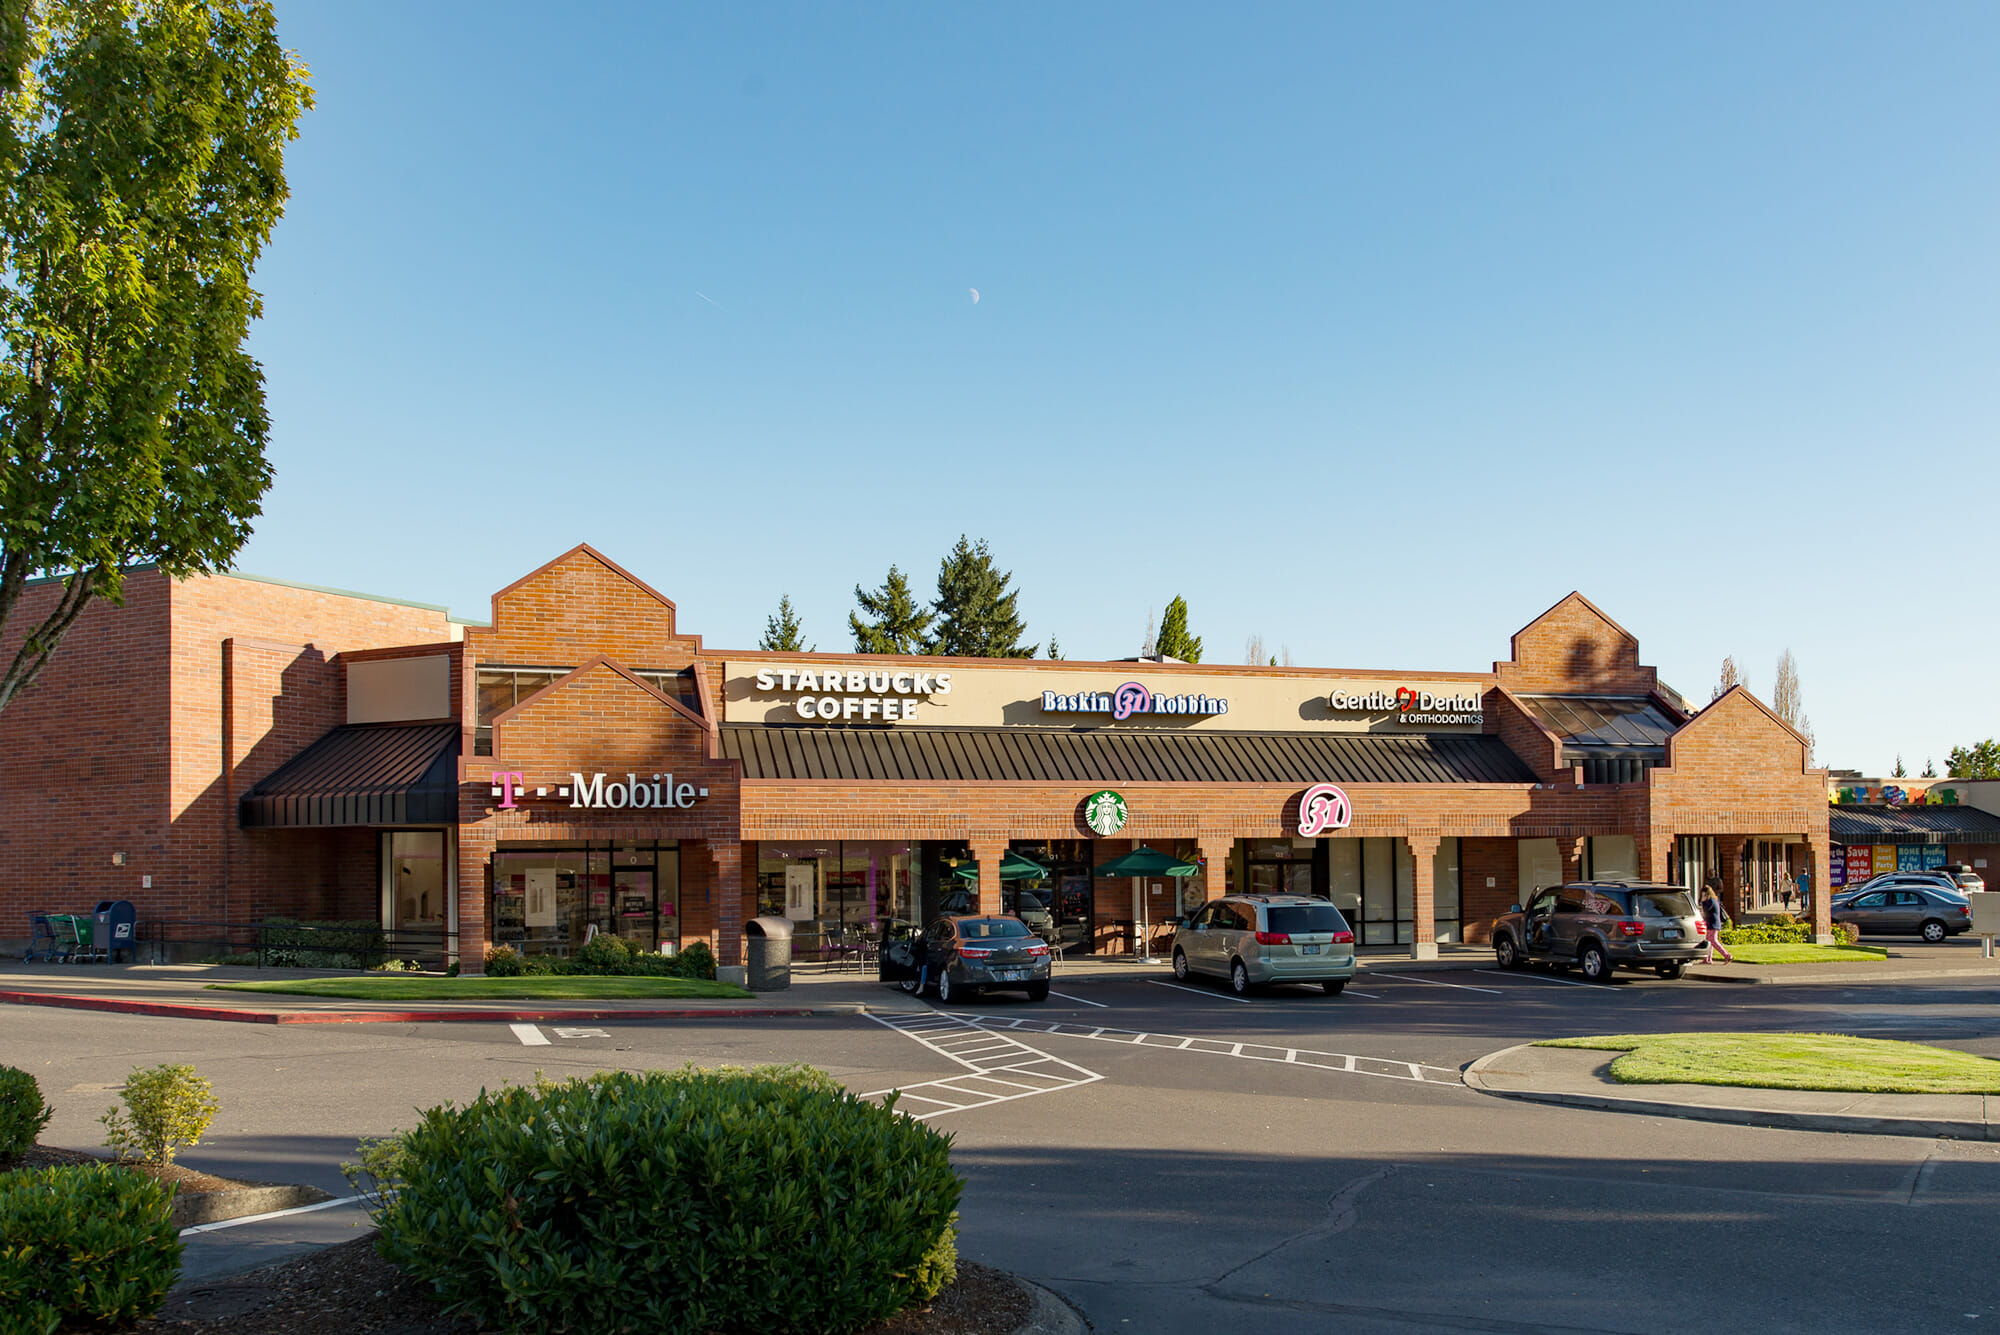 Starbucks, Baskin Robbins, Gentle Dental at TIgard Towne Square